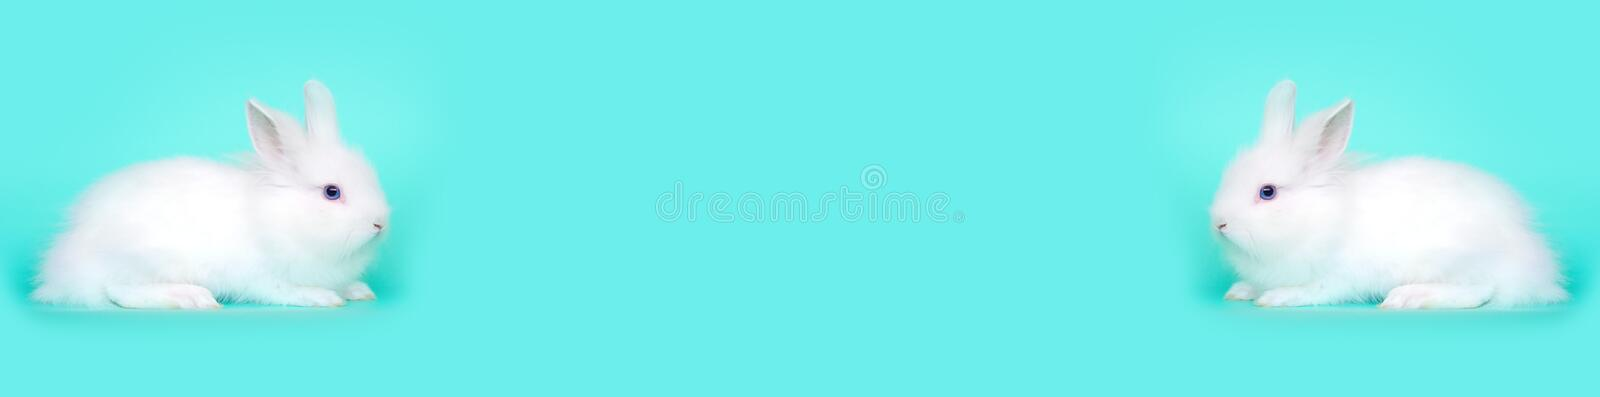 Spring and Easter concept image. Front view of one white bunny rabbit sitting on its paws, over a light blue mint stock images